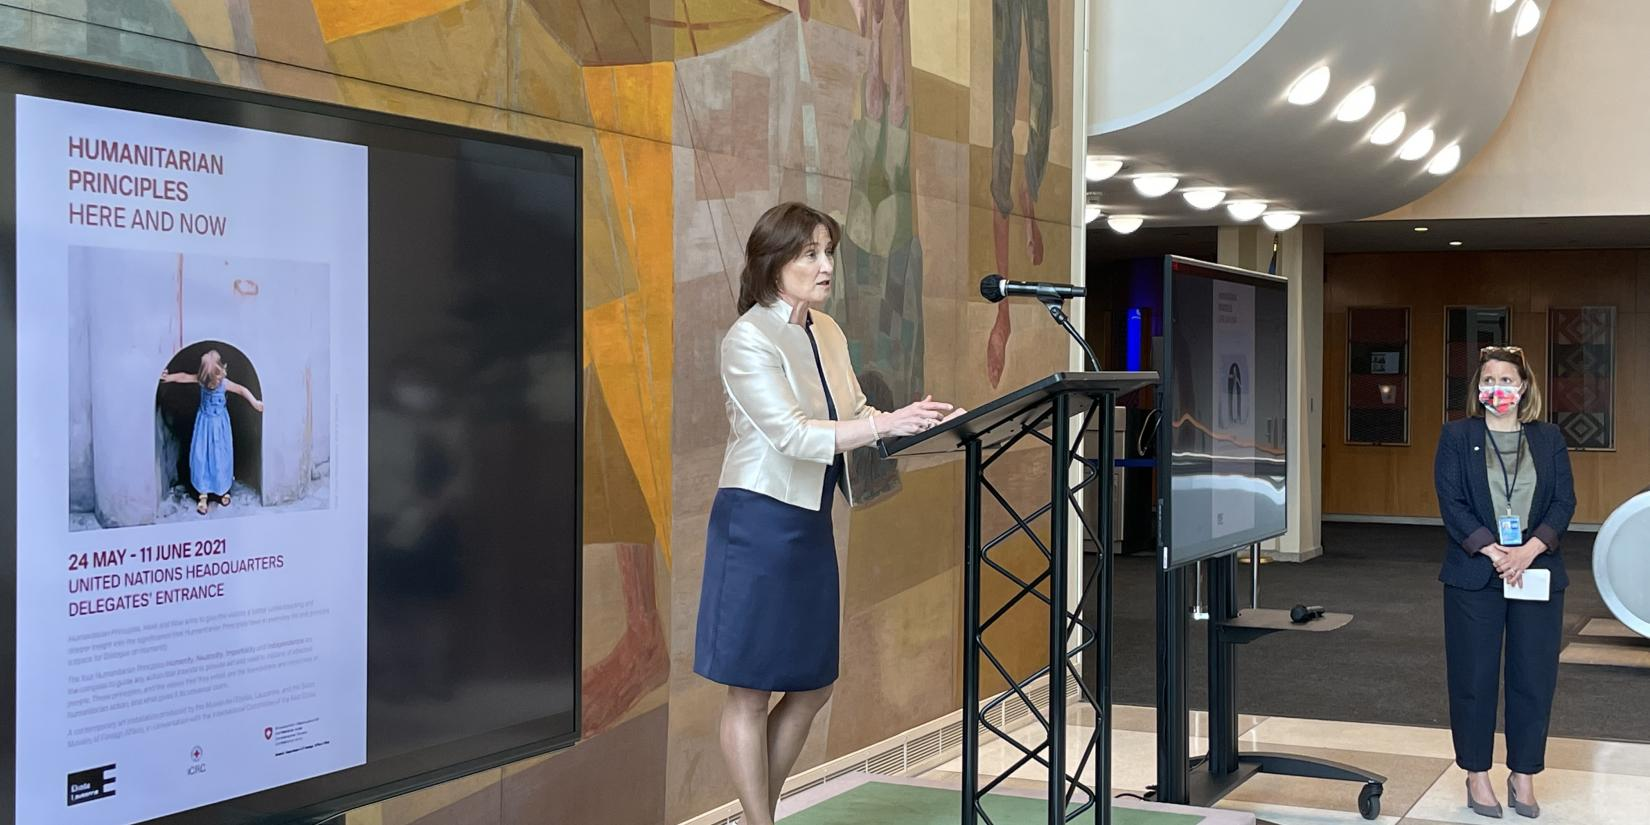 Ambassador Pascale Baeriswyl opens the inauguration ceremony of the exhibition.